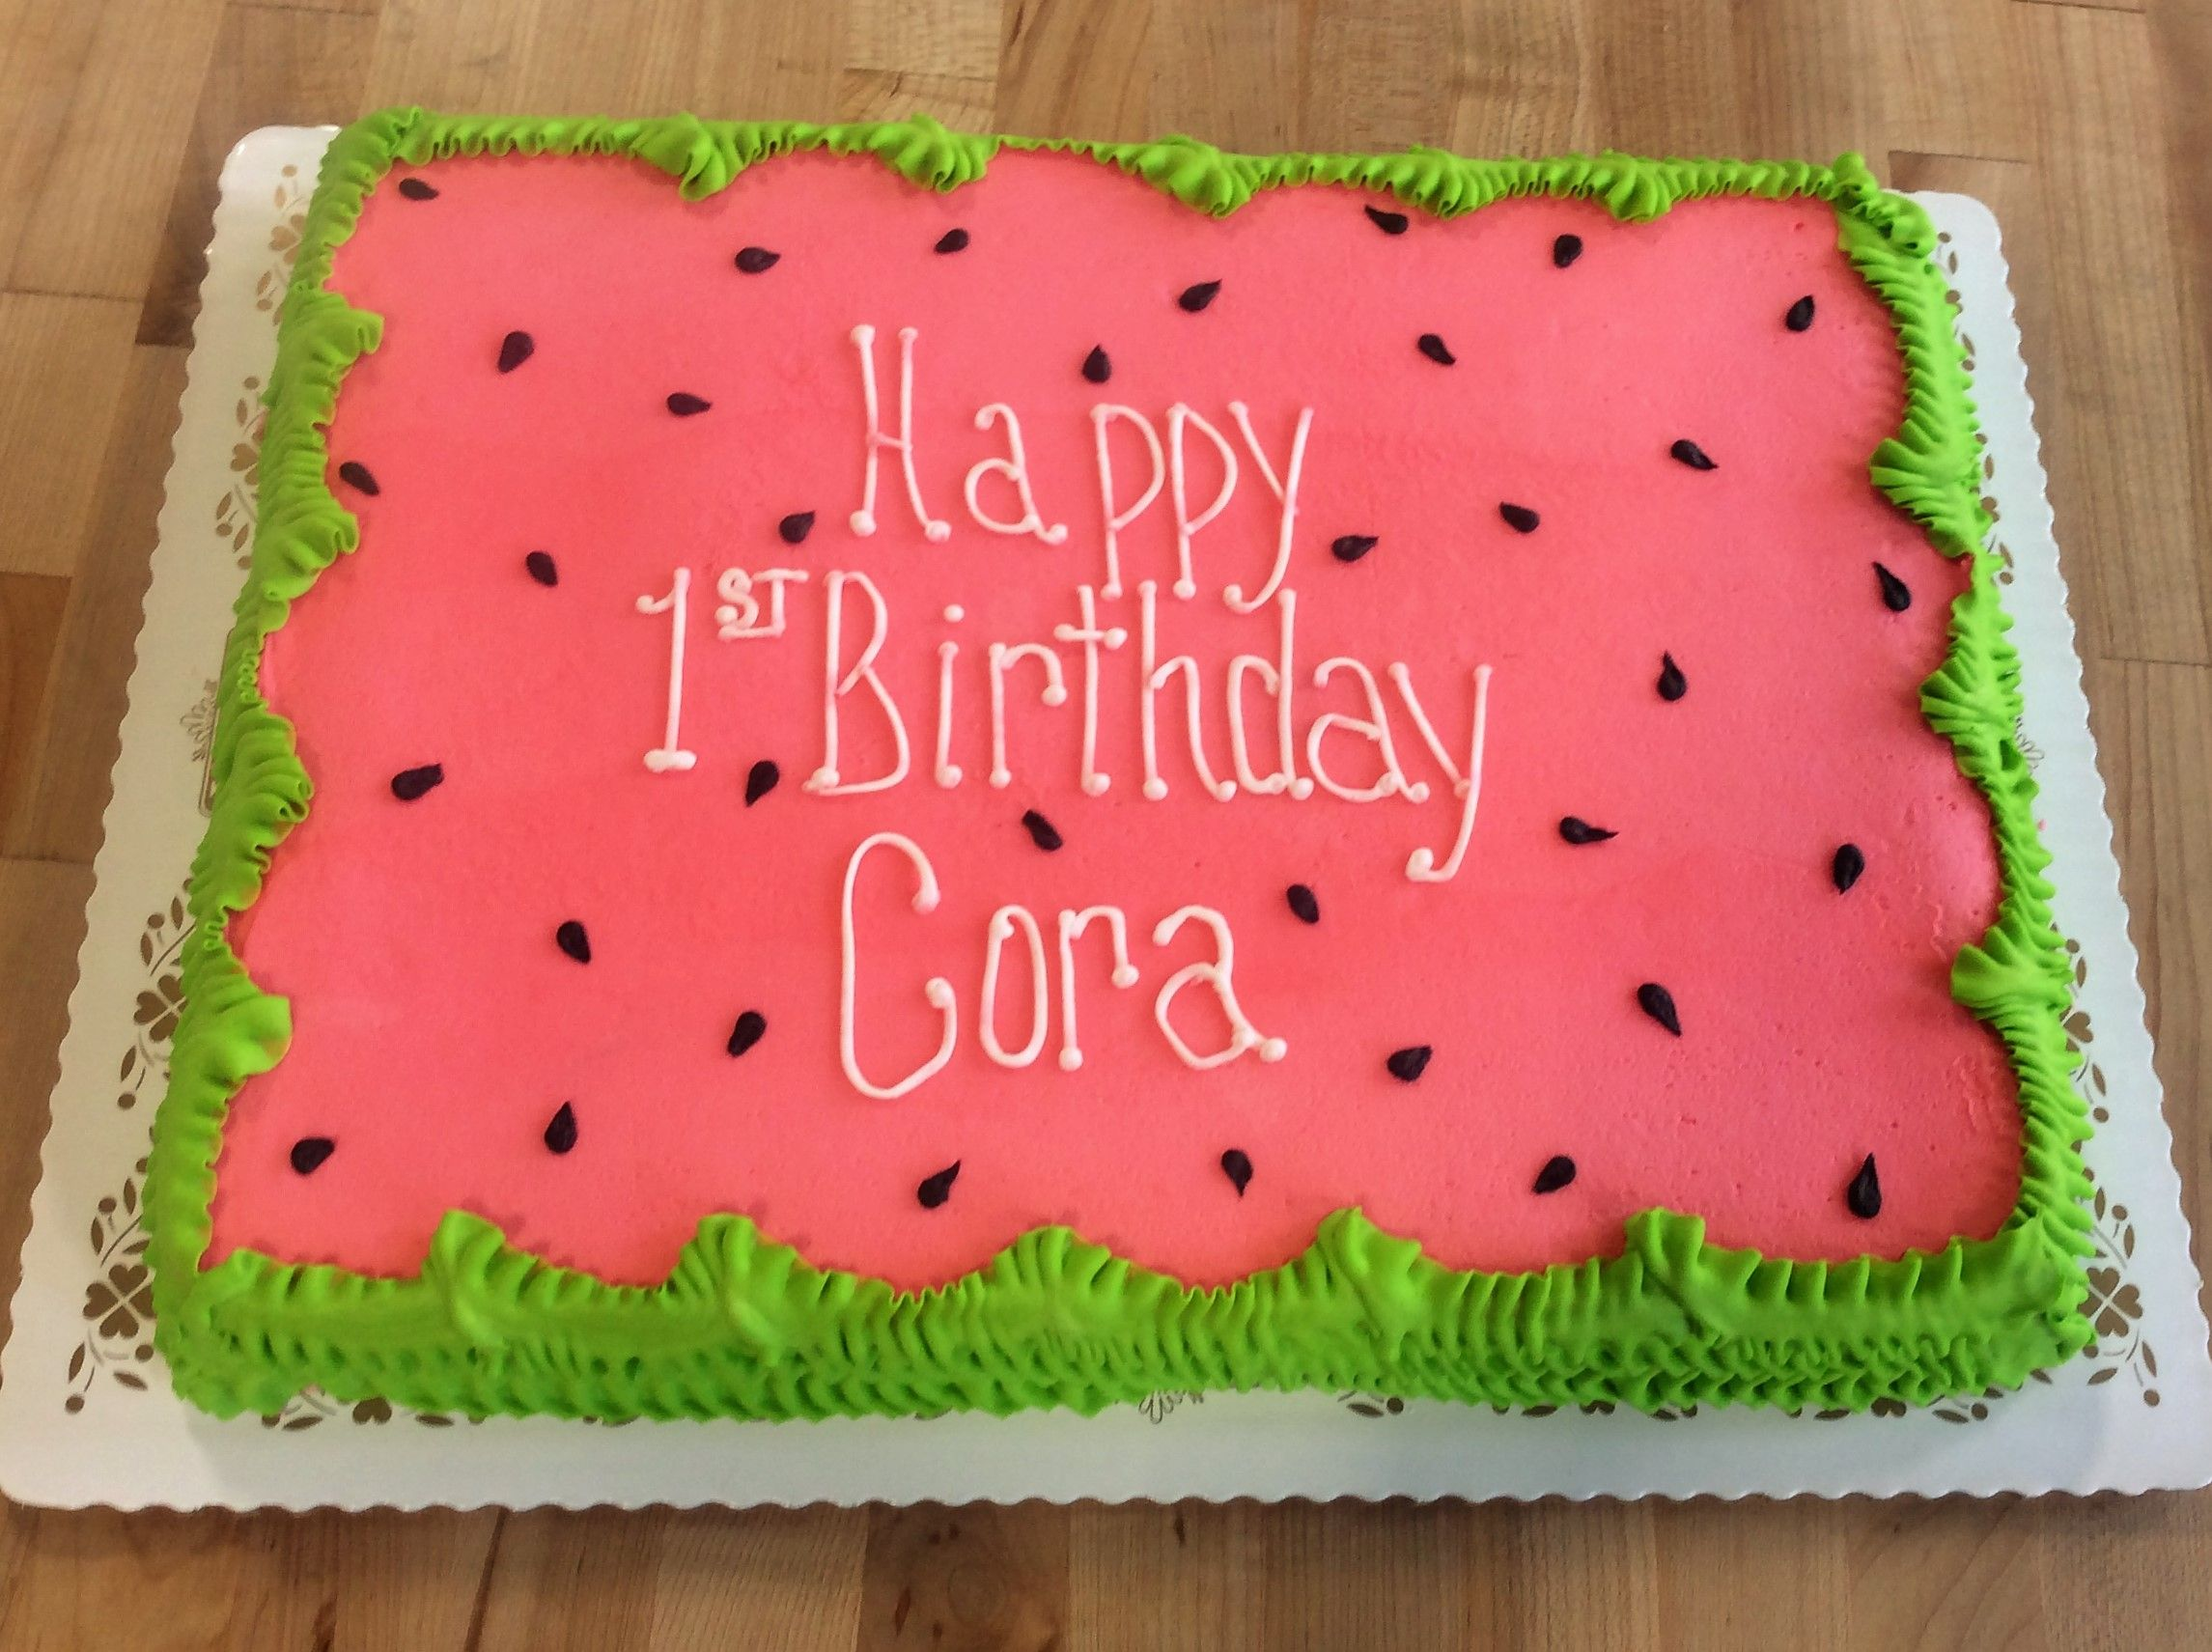 Miraculous Watermelon Sheet Cake Watermelon Cake Birthday Watermelon Funny Birthday Cards Online Inifofree Goldxyz